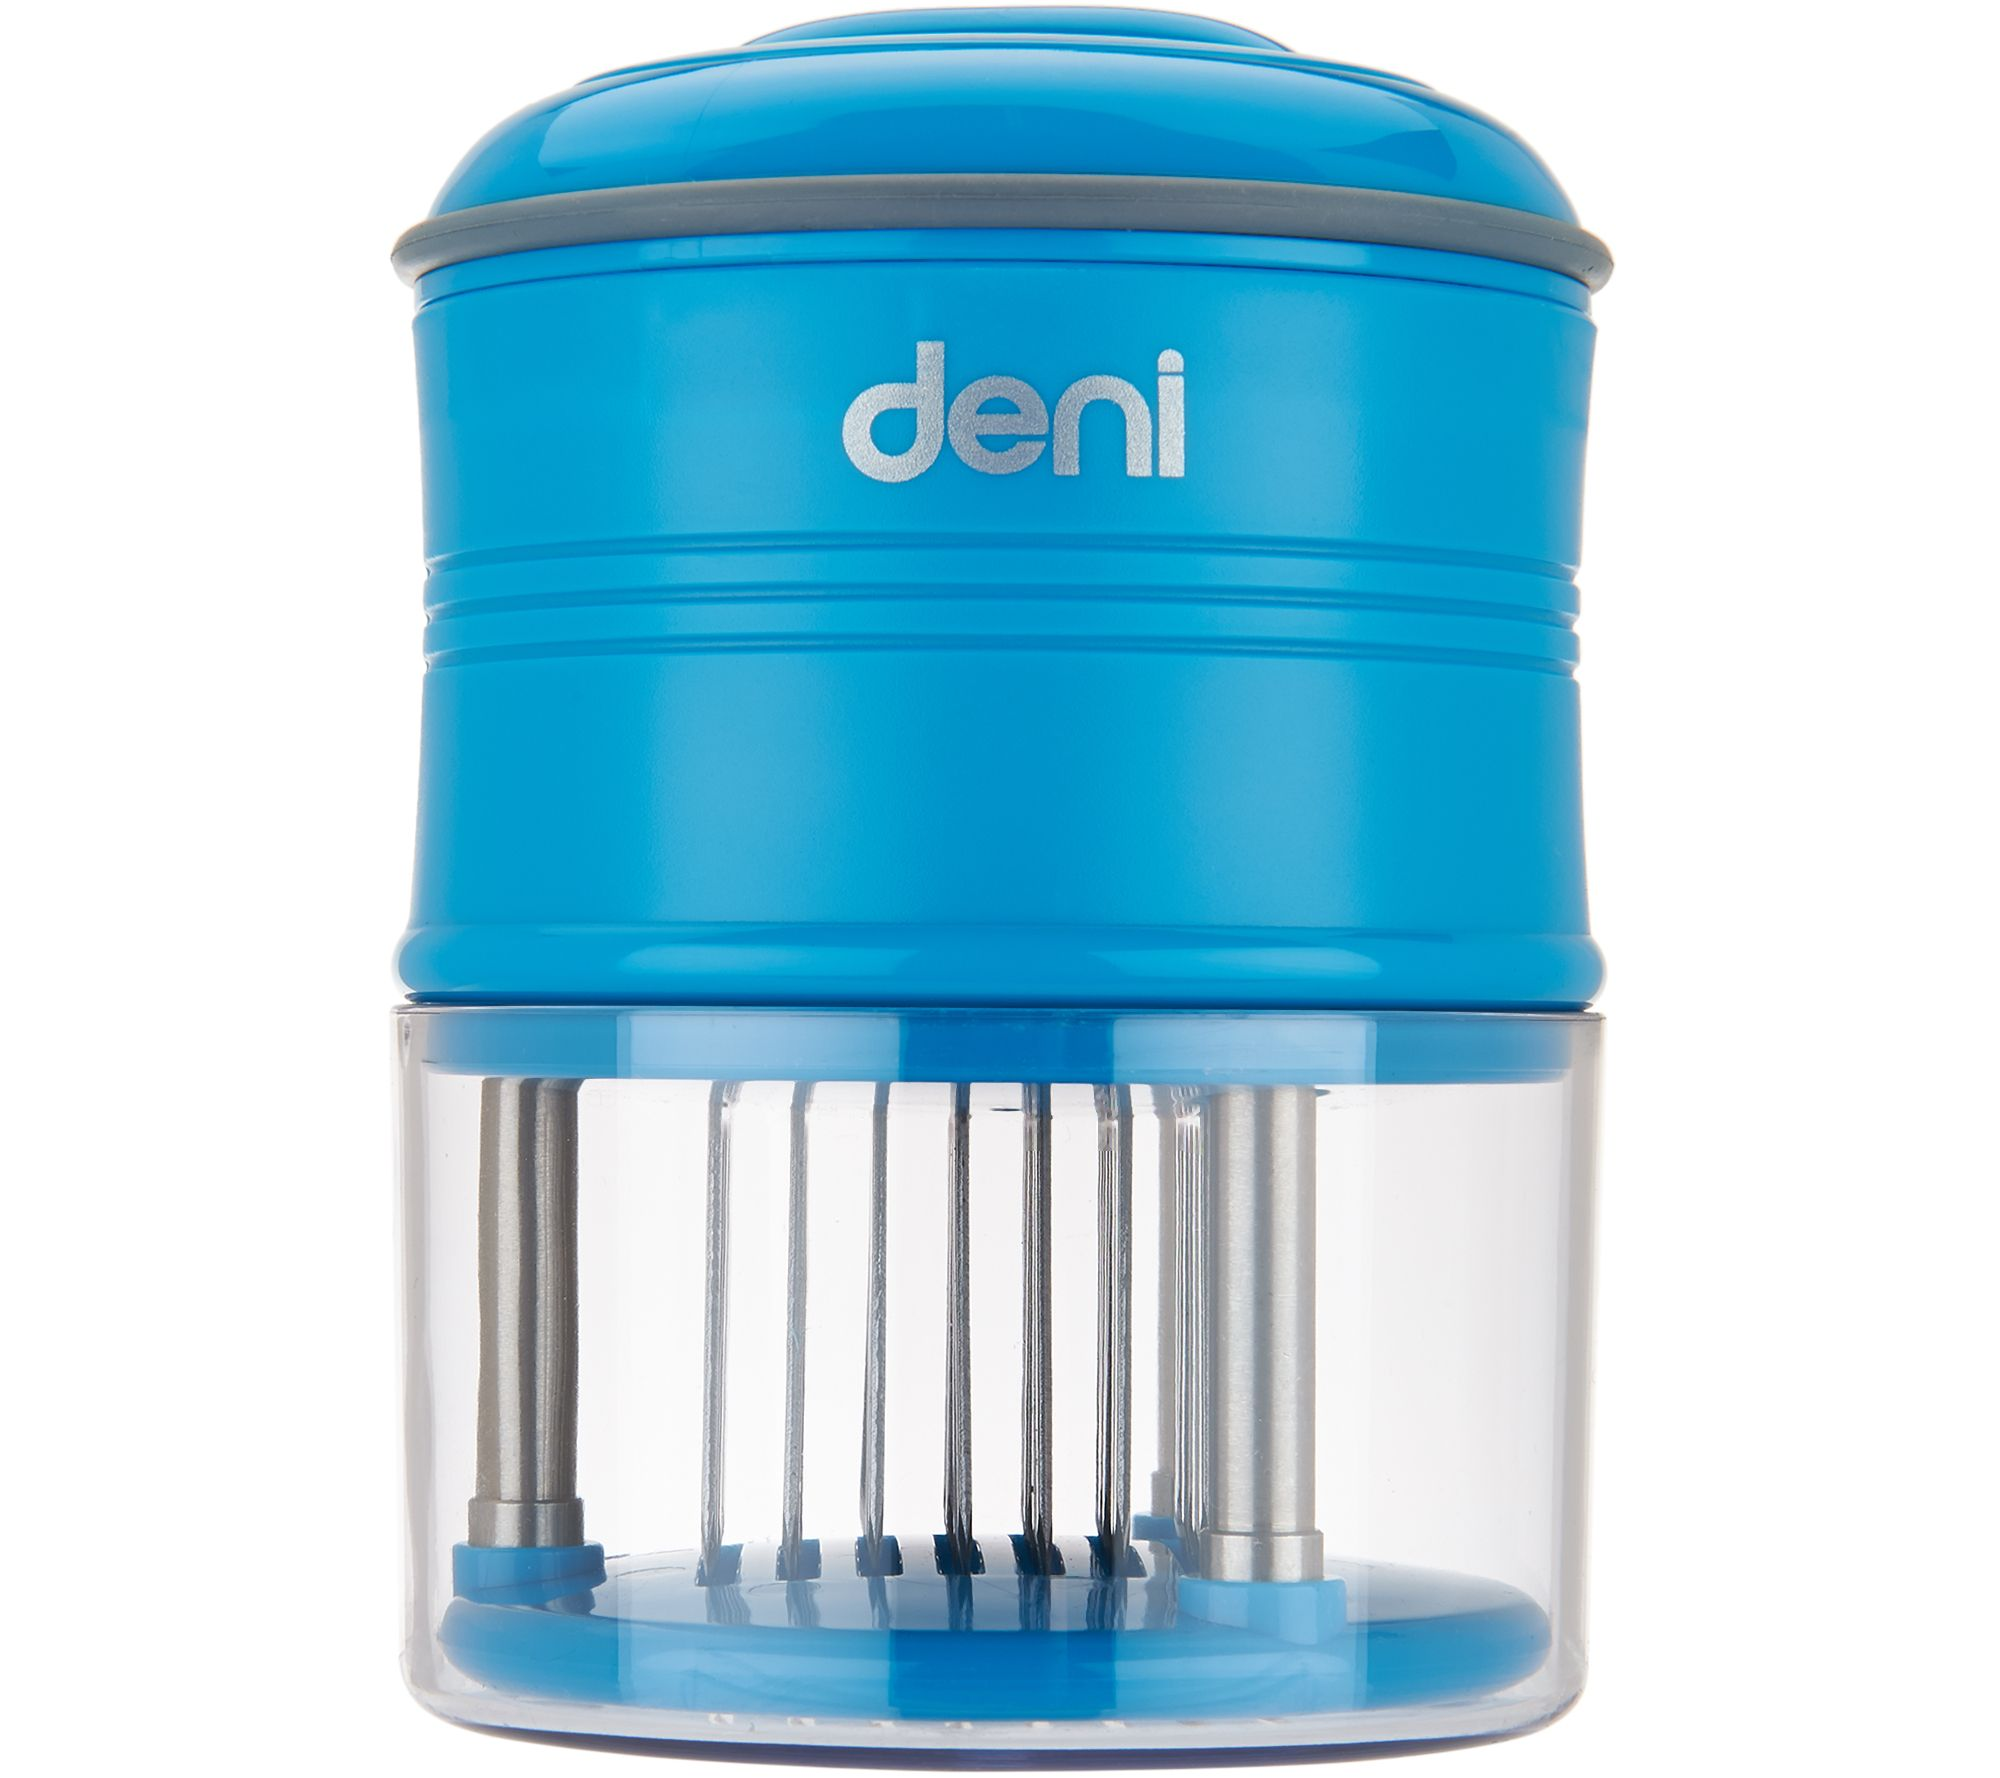 Deni 56 Stainless Steel Removable Blade Meat Tenderizer - Page 1 ...